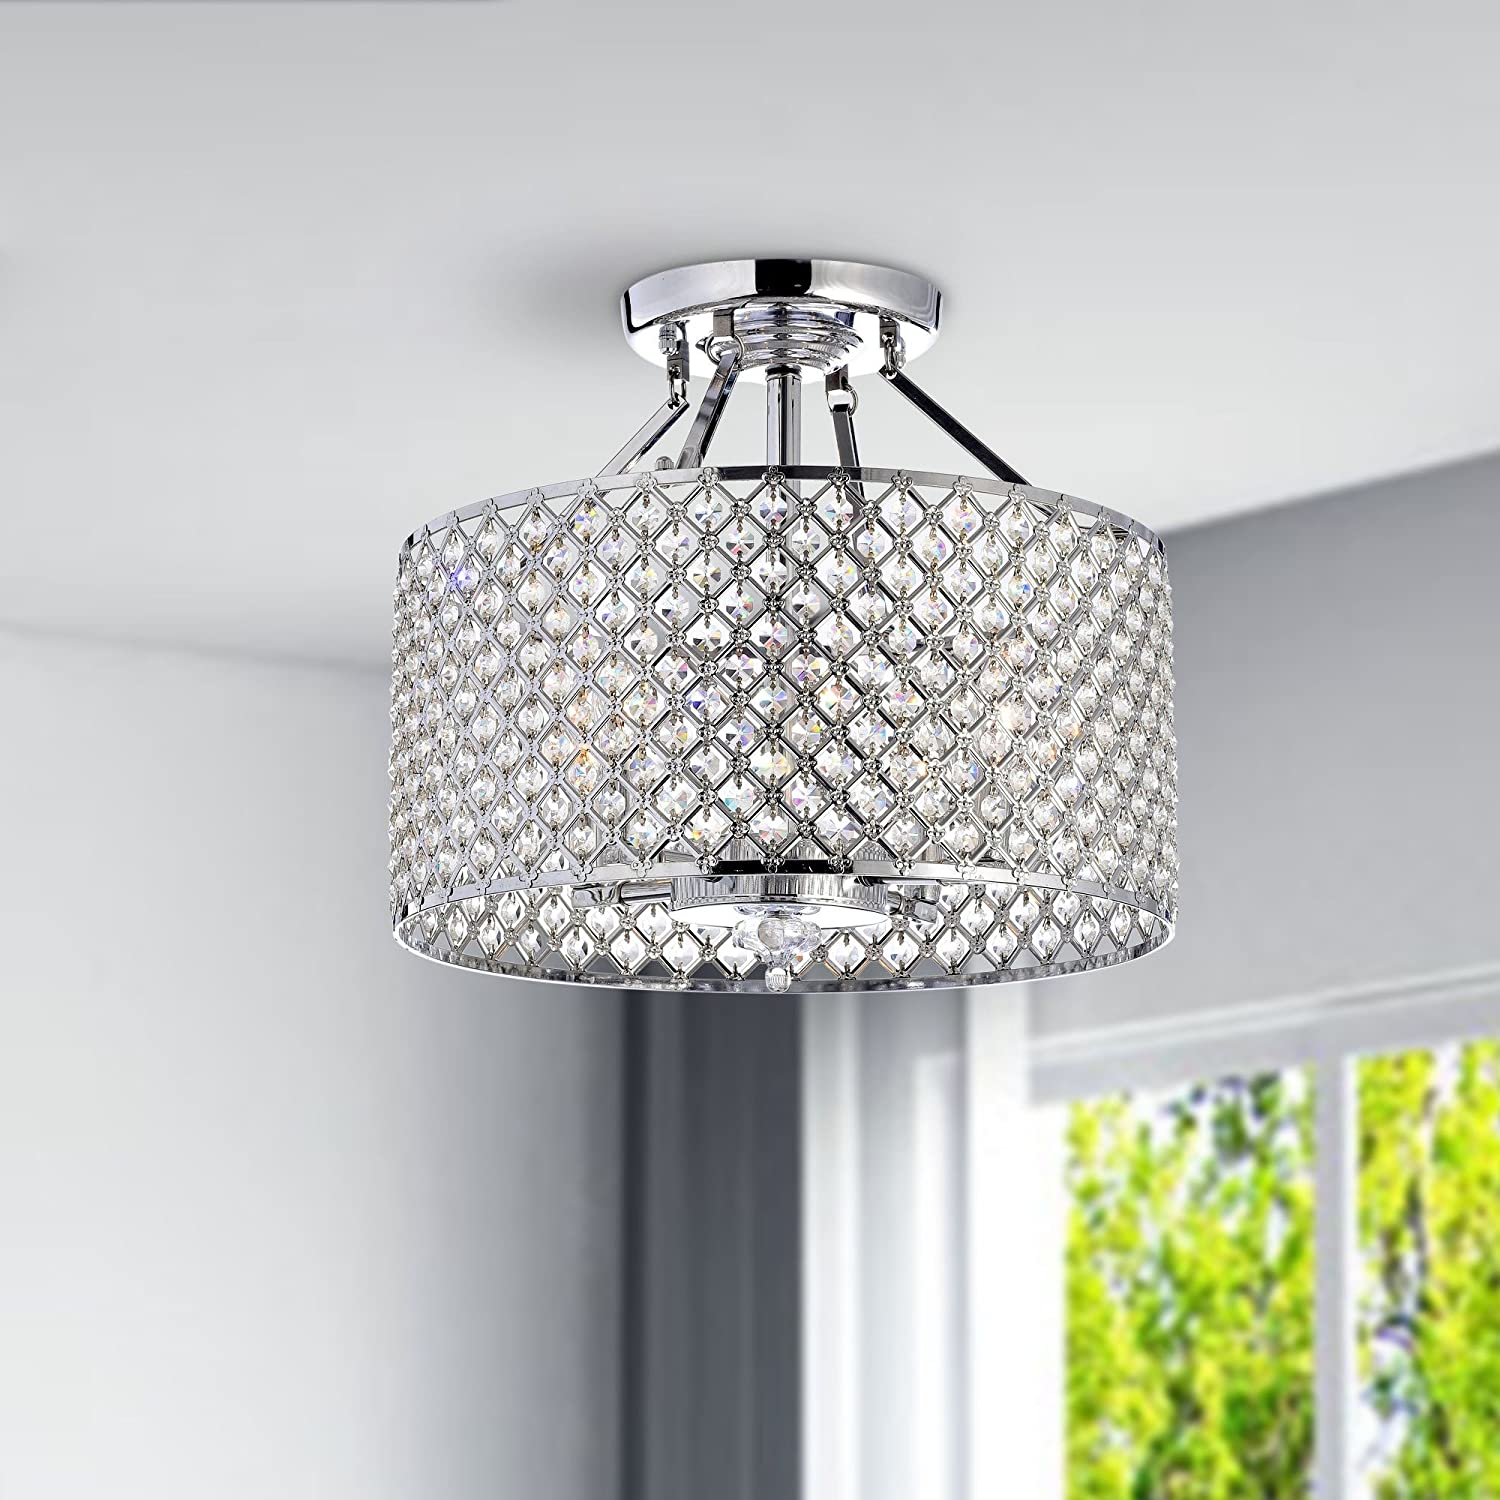 Chrome crystal 4 light round ceiling chandelier amazon arubaitofo Gallery